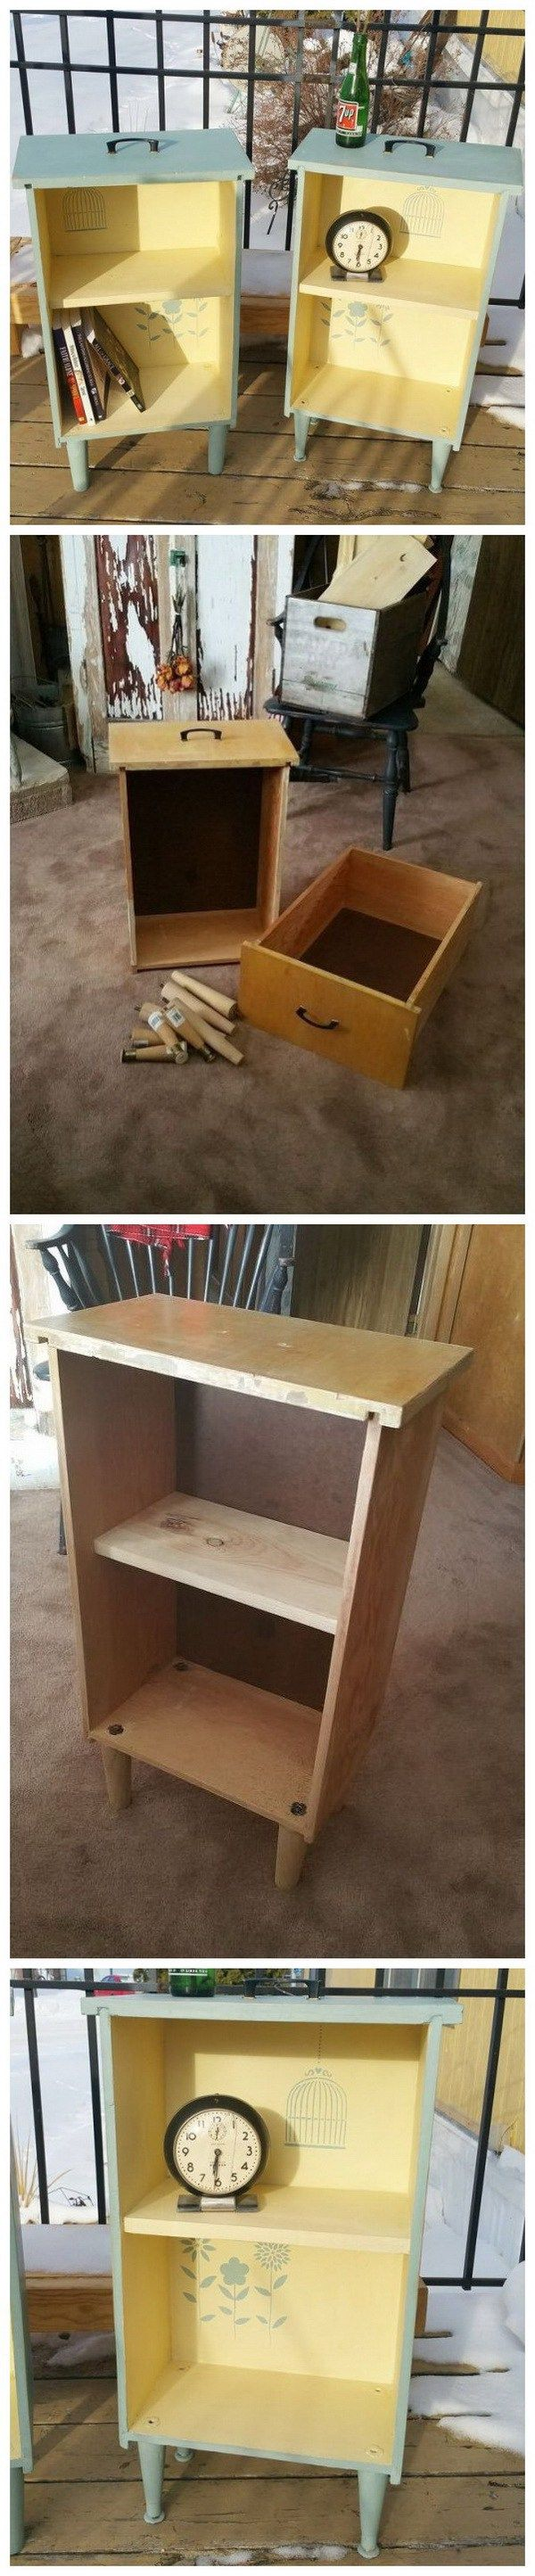 20 DIY Ideas to Reuse Old Furniture Reuse, DIY ideas and